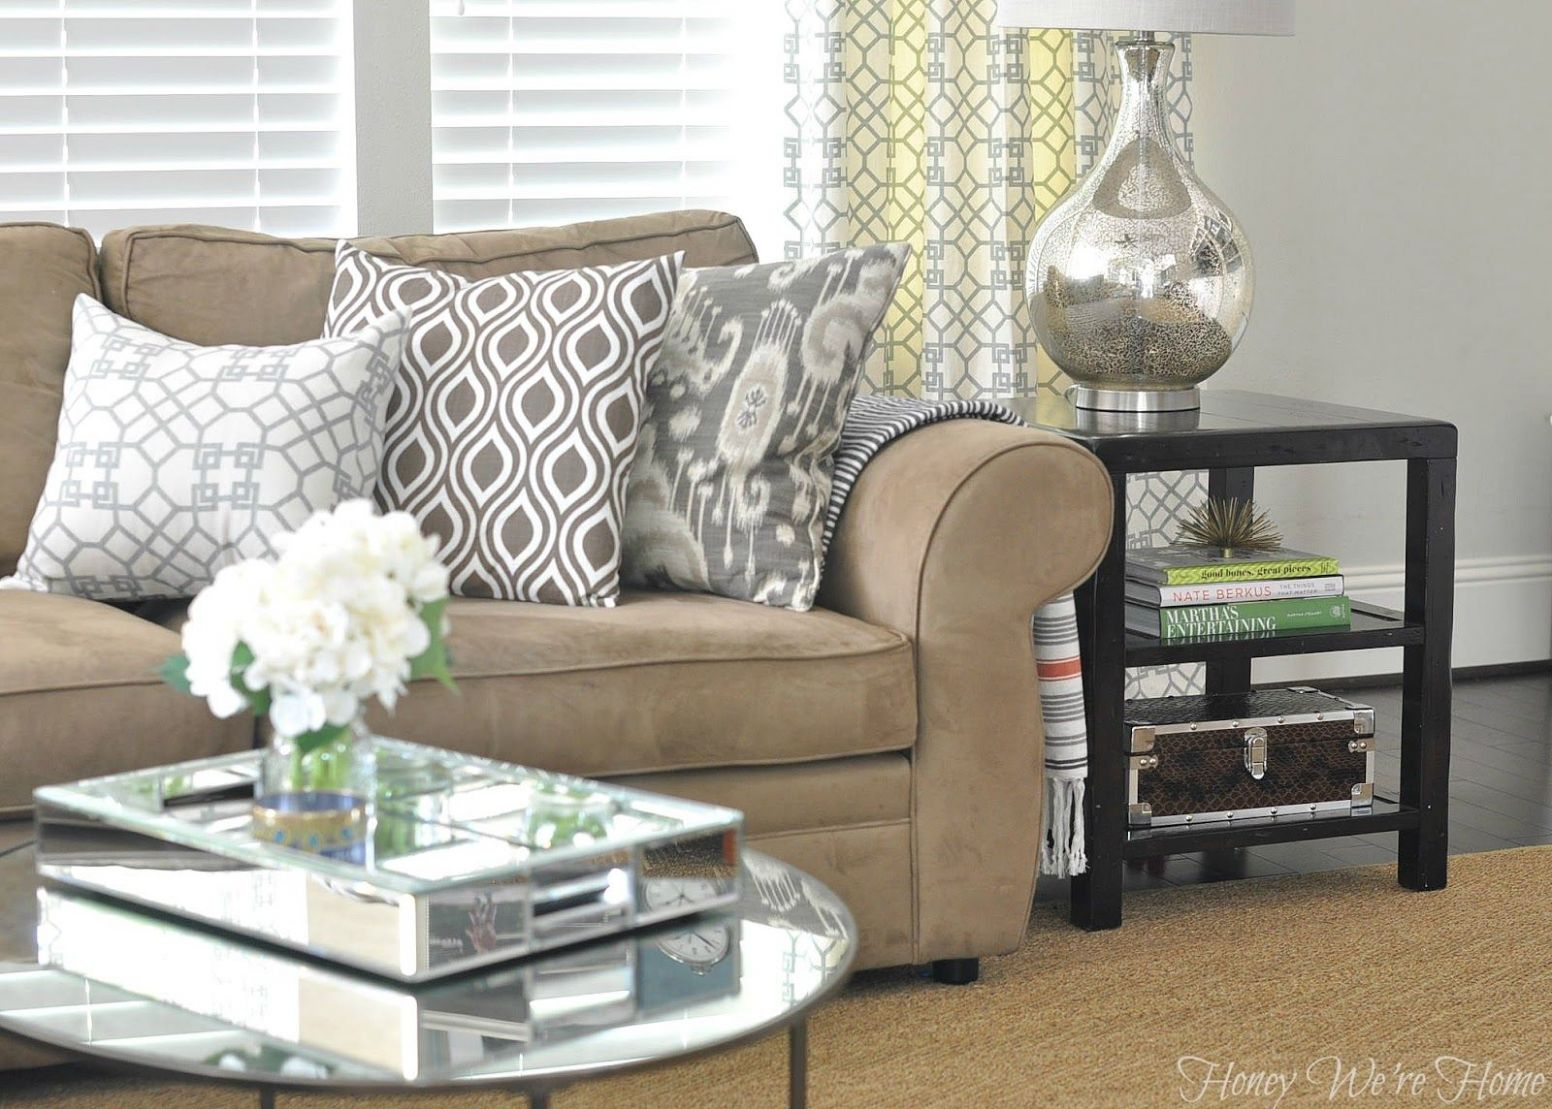 Tan furniture with gray walls. (With images) | Tan couch living ..